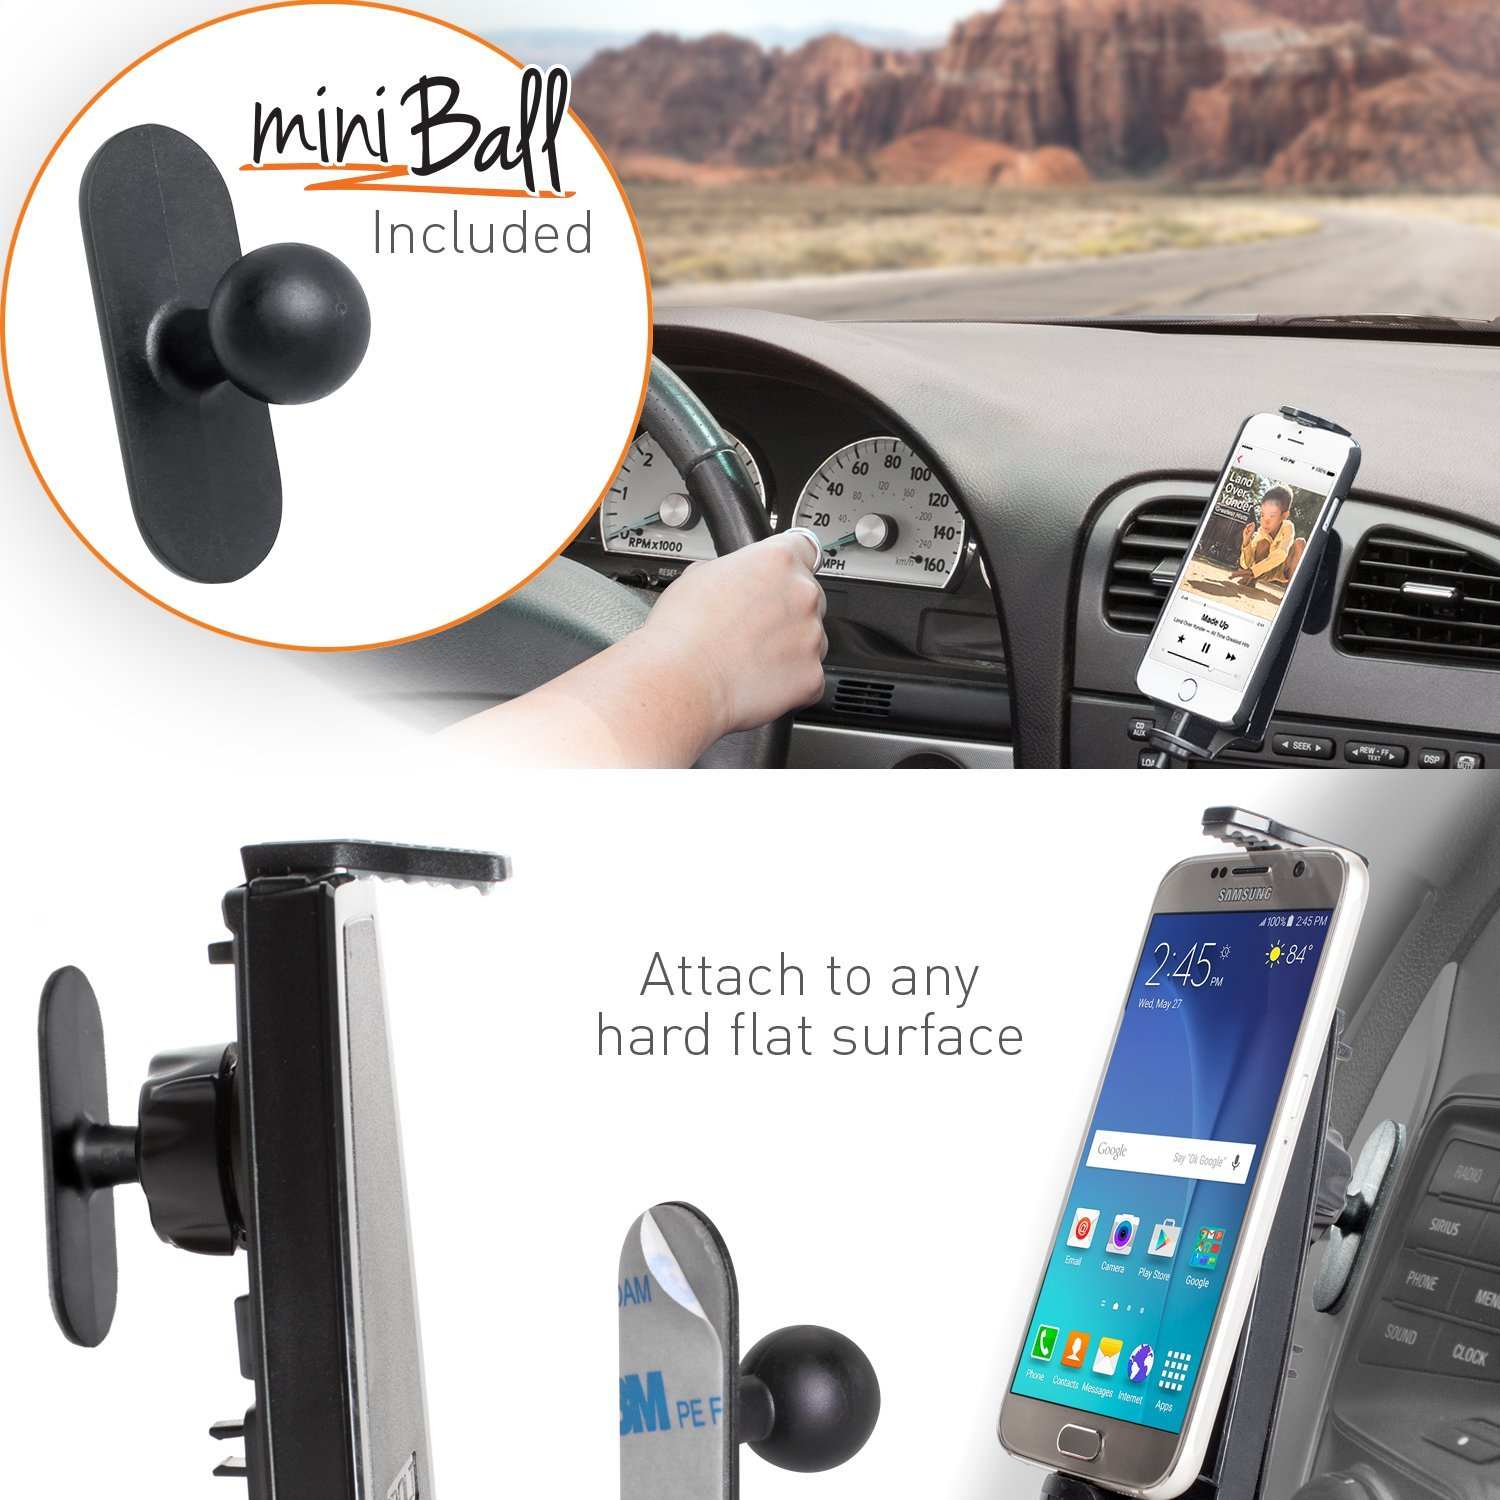 and a 2m microUSB Cable- Compatible w//Samsung Galaxy S6 // S7 Suction Cup Mount, Vent Mount, and Mini Mount iBOLT mProNFC Combo Car Dock//Mount for Android Phones- 3 mounts